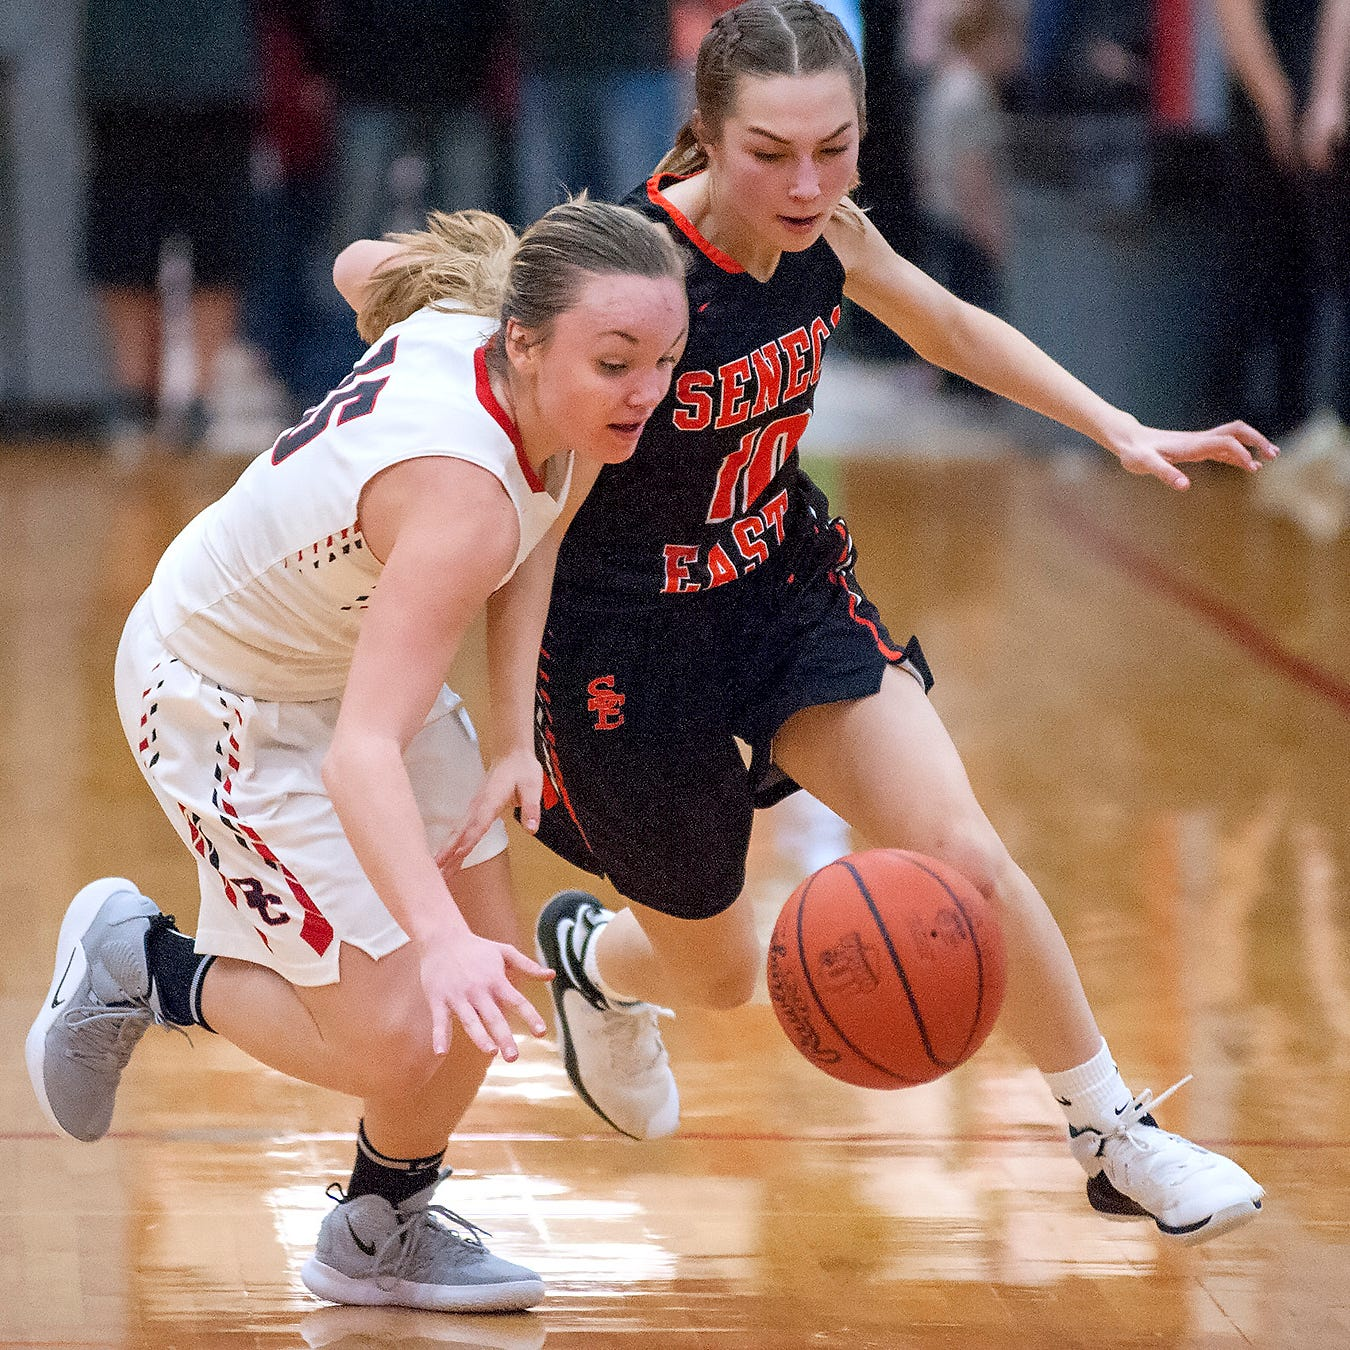 'We were going to learn something:' Buckettes' 13-game win streak snapped by Seneca East